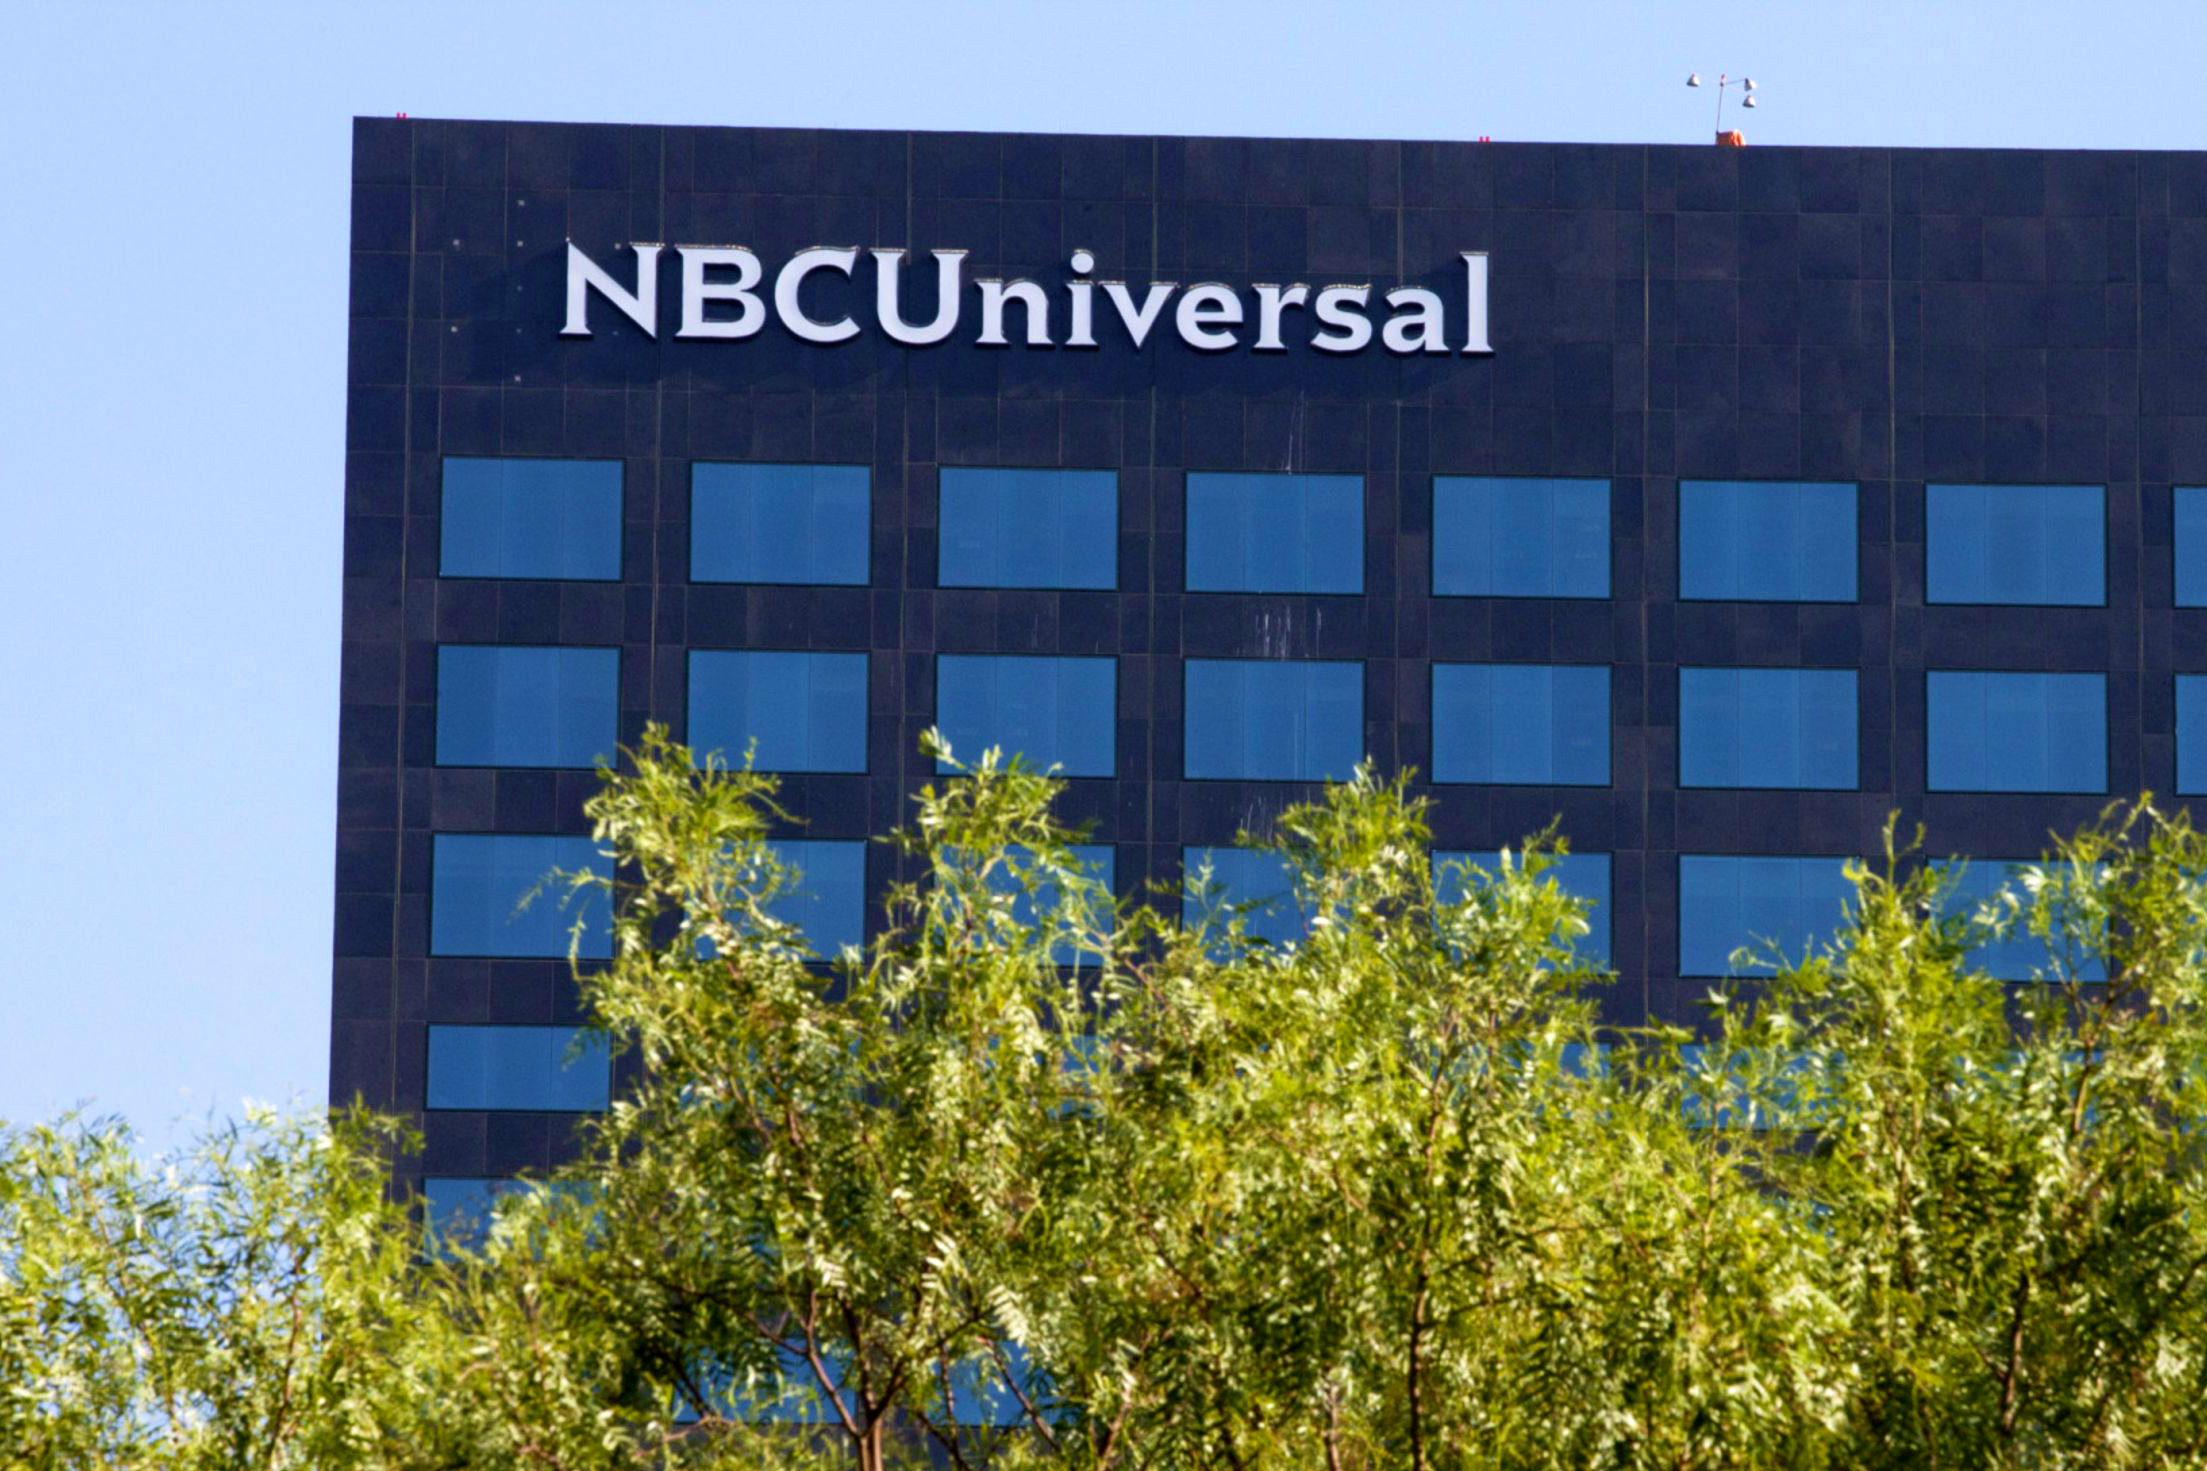 NBCUniversal One Platform Spot On local advertisers marketers regional OTT CTV streaming Peacock Youtube Apple News